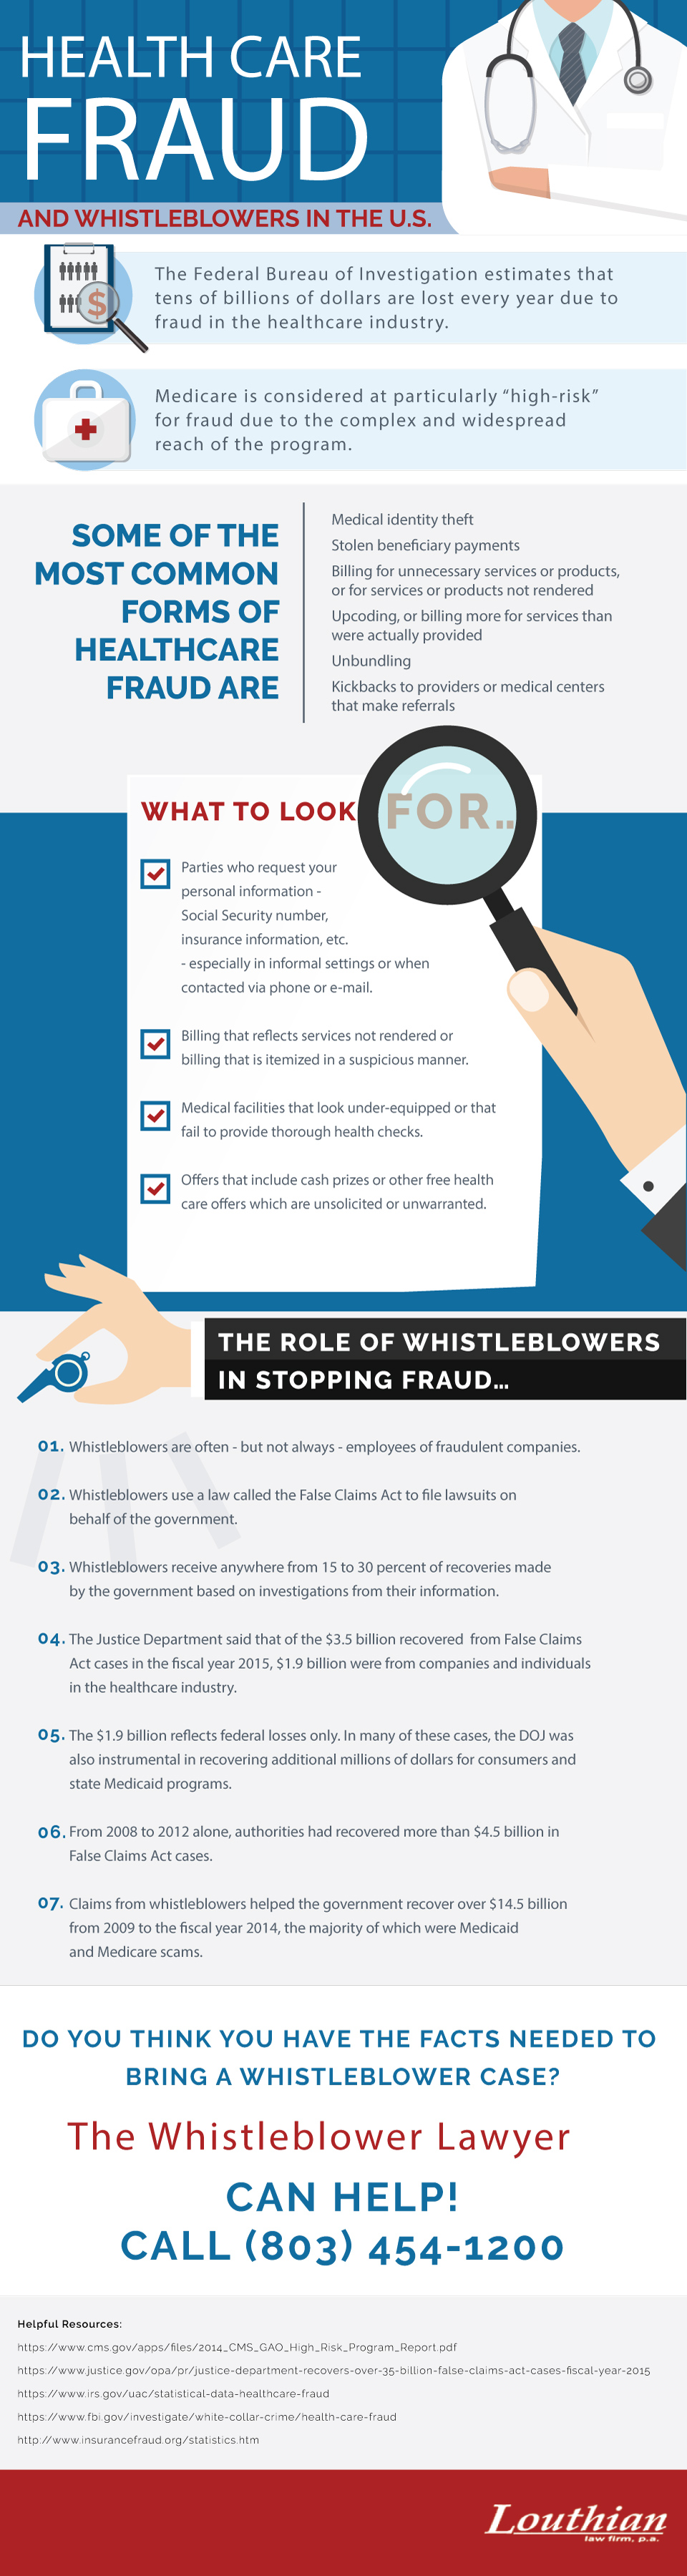 Healthcare Fraud and Whistleblowers in US Infographic